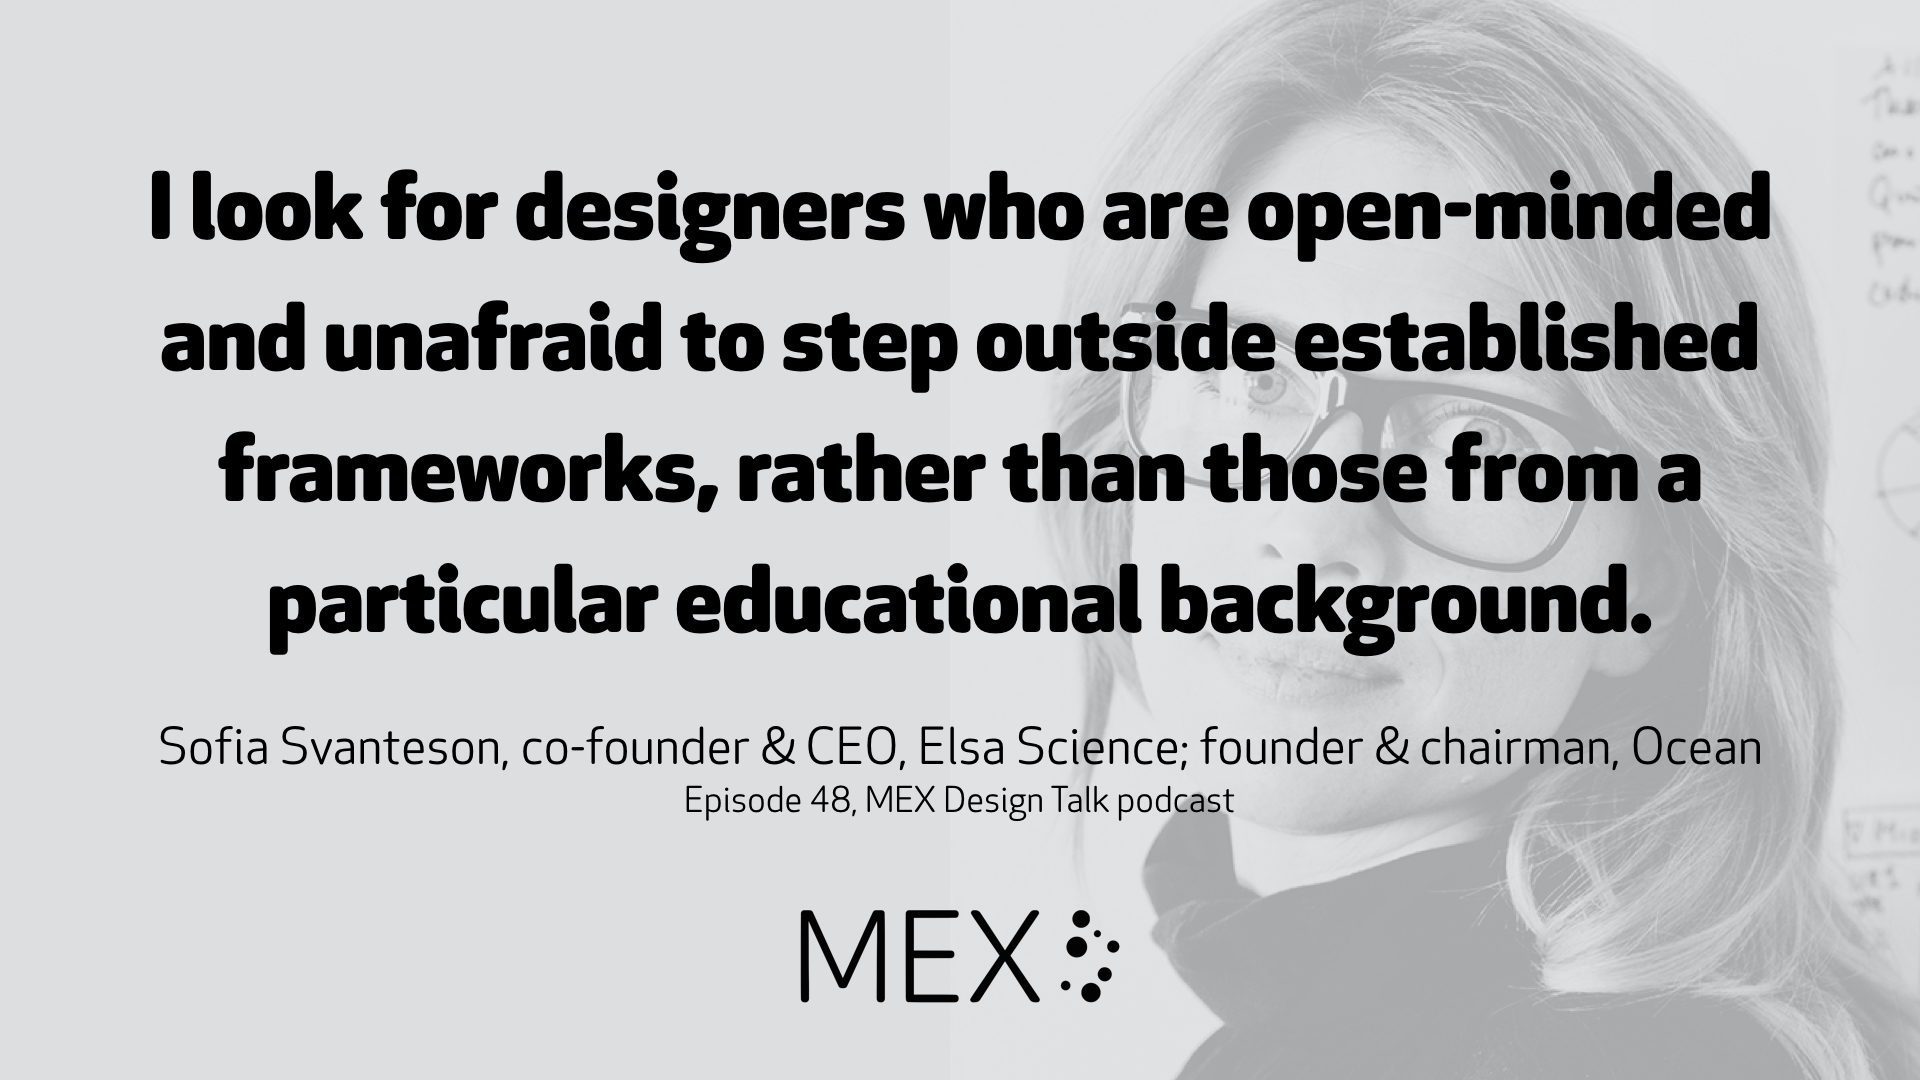 I look for designers who are open-minded and unafraid to step outside established frameworks, rather than those from a particular educational background. Sofia Svanteson, co-founder & CEO, Elsa Science; founder & chairman, Ocean Episode 48, MEX Design Talk podcast